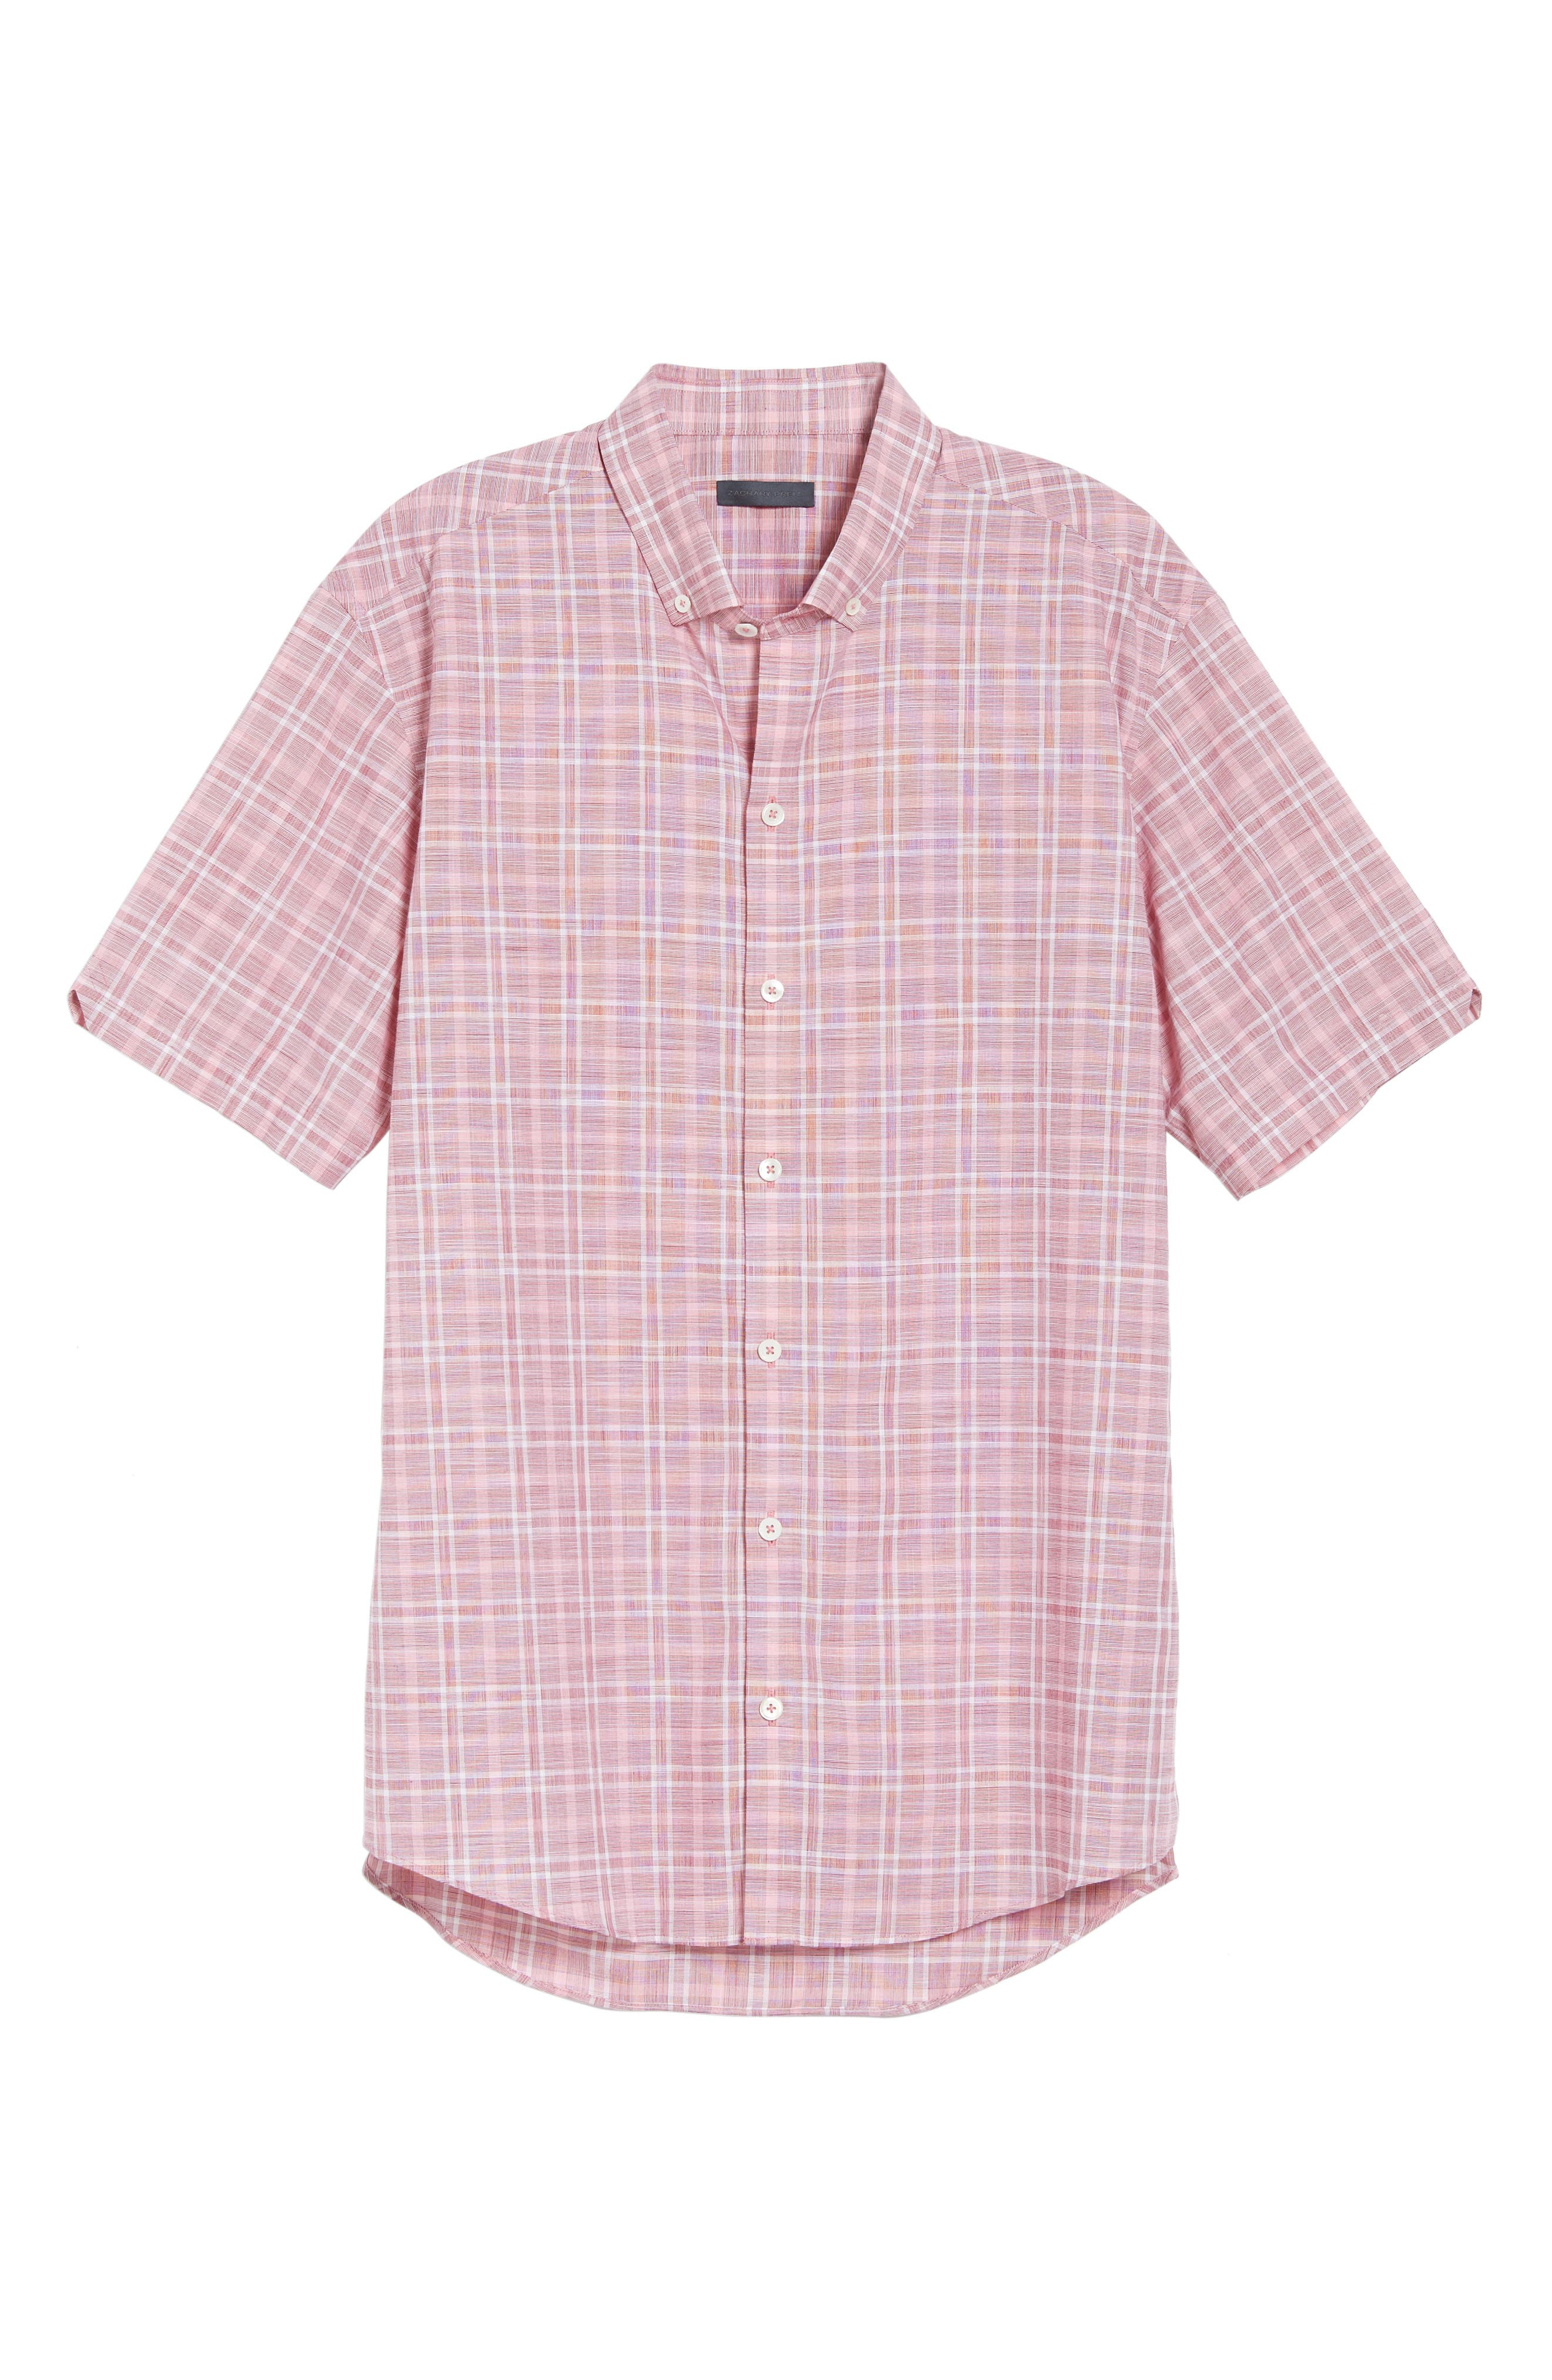 Holland Plaid Short Sleeve Sport Shirt,                             Alternate thumbnail 6, color,